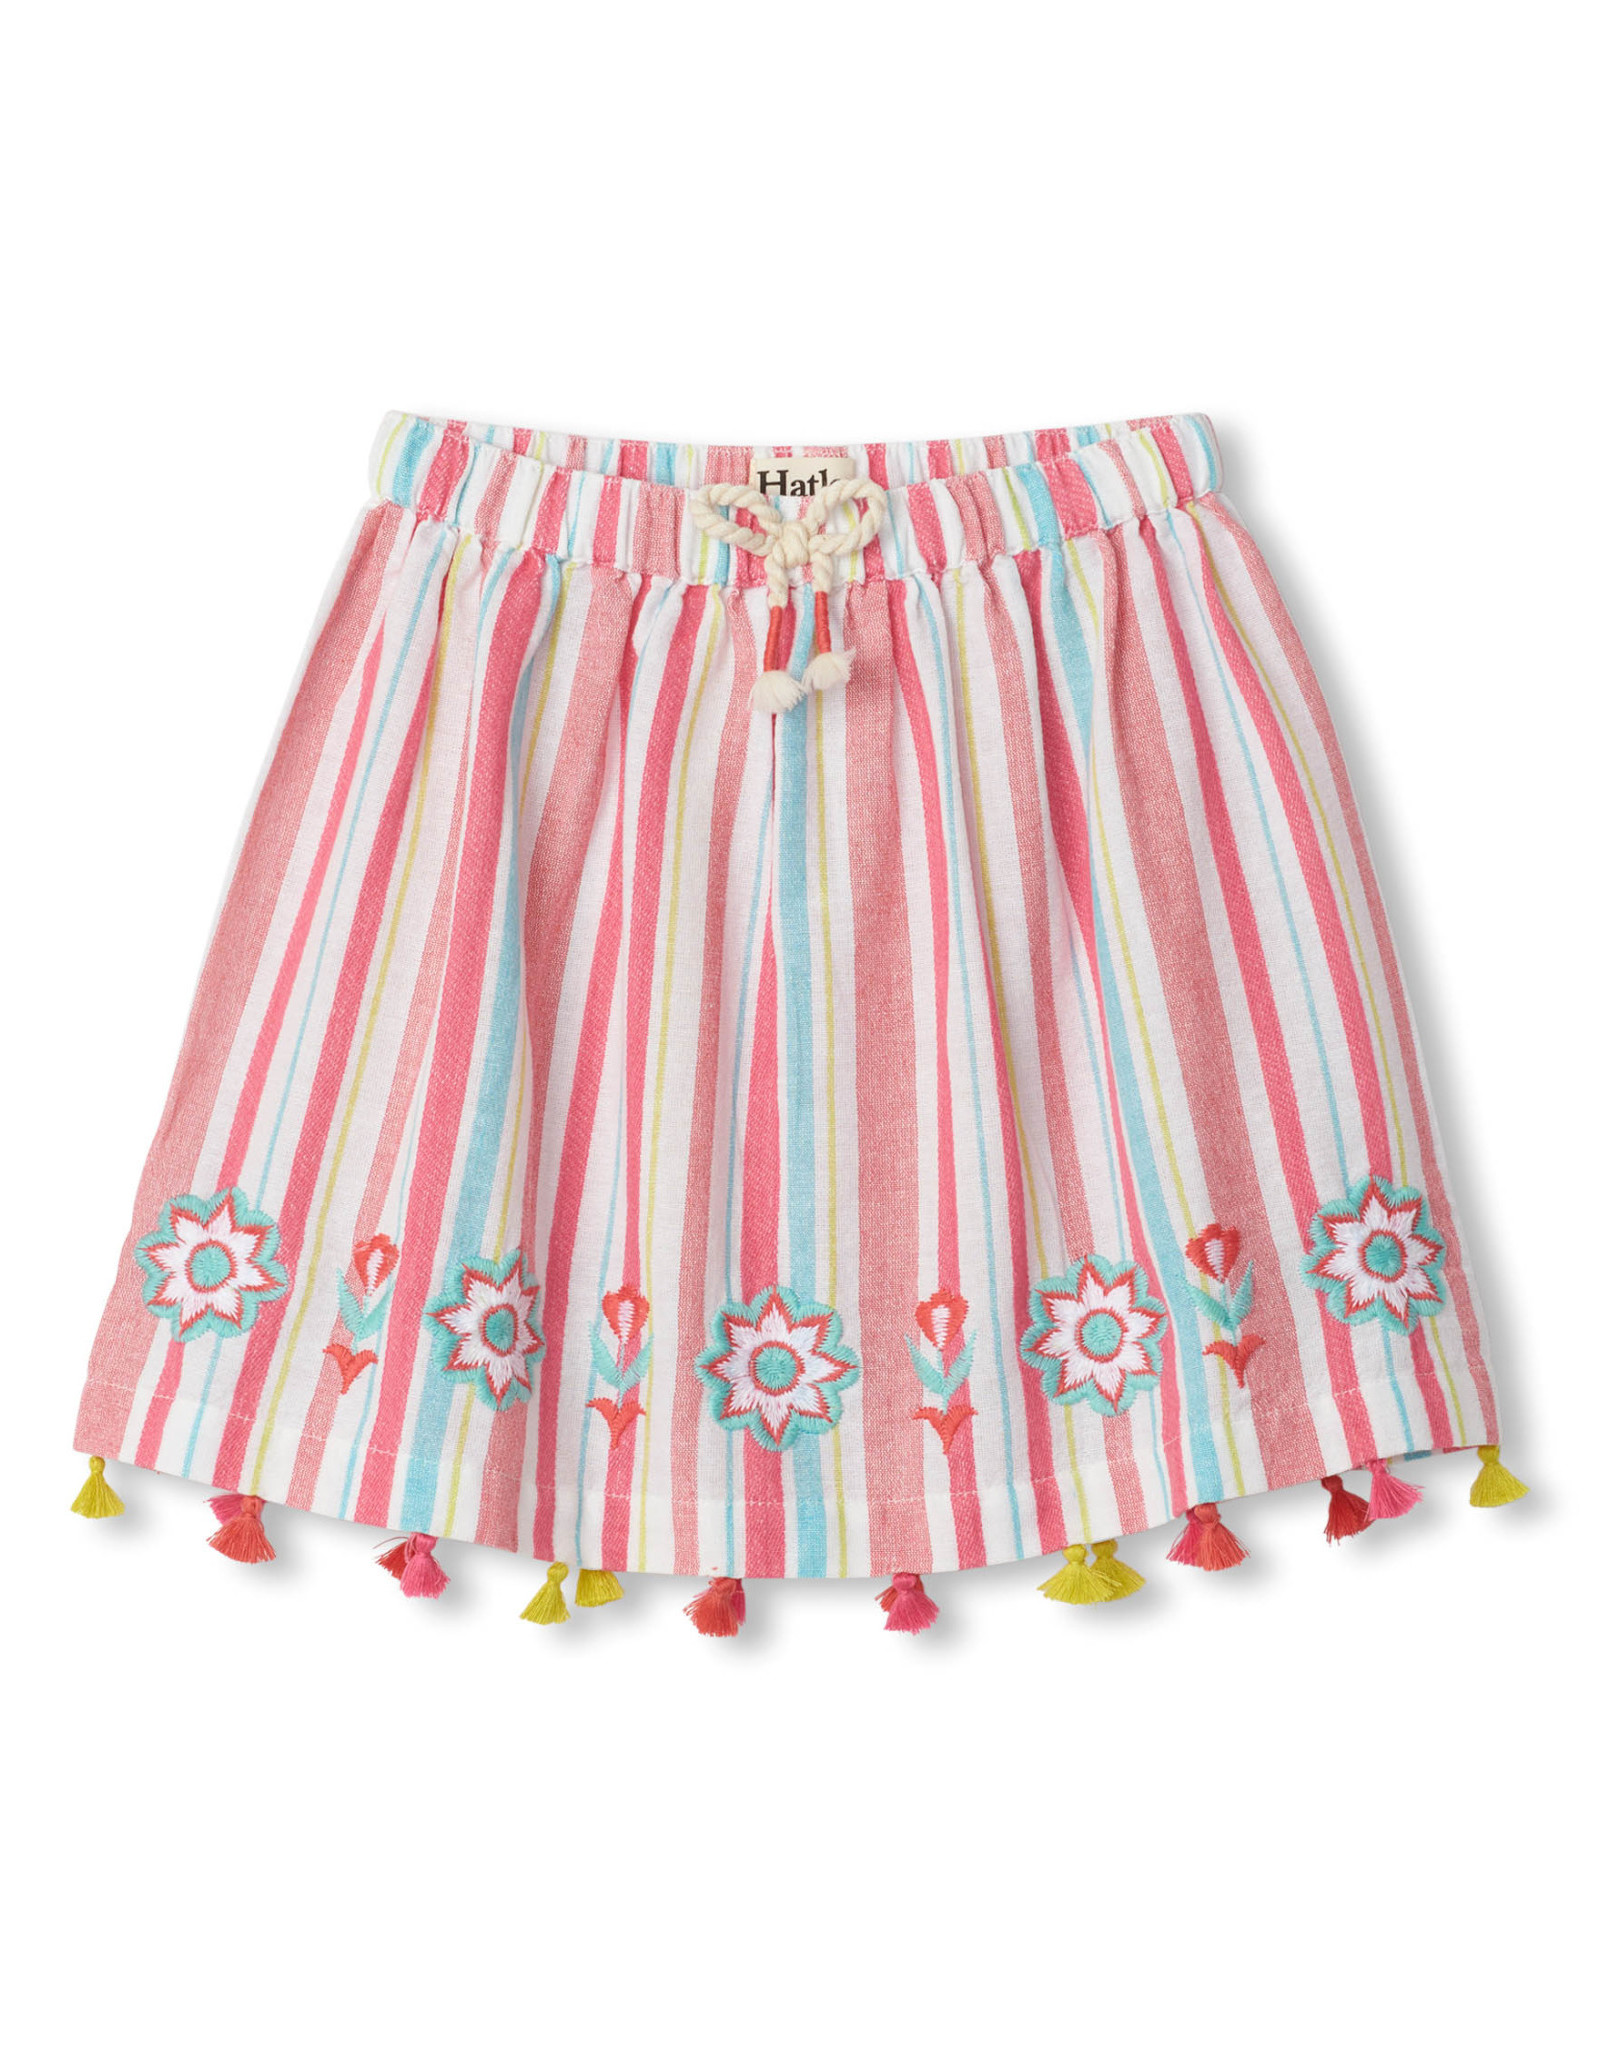 LITTLE BLUE HOUSE (HATLEY) PINK LEMONADE TASSEL SKIRT